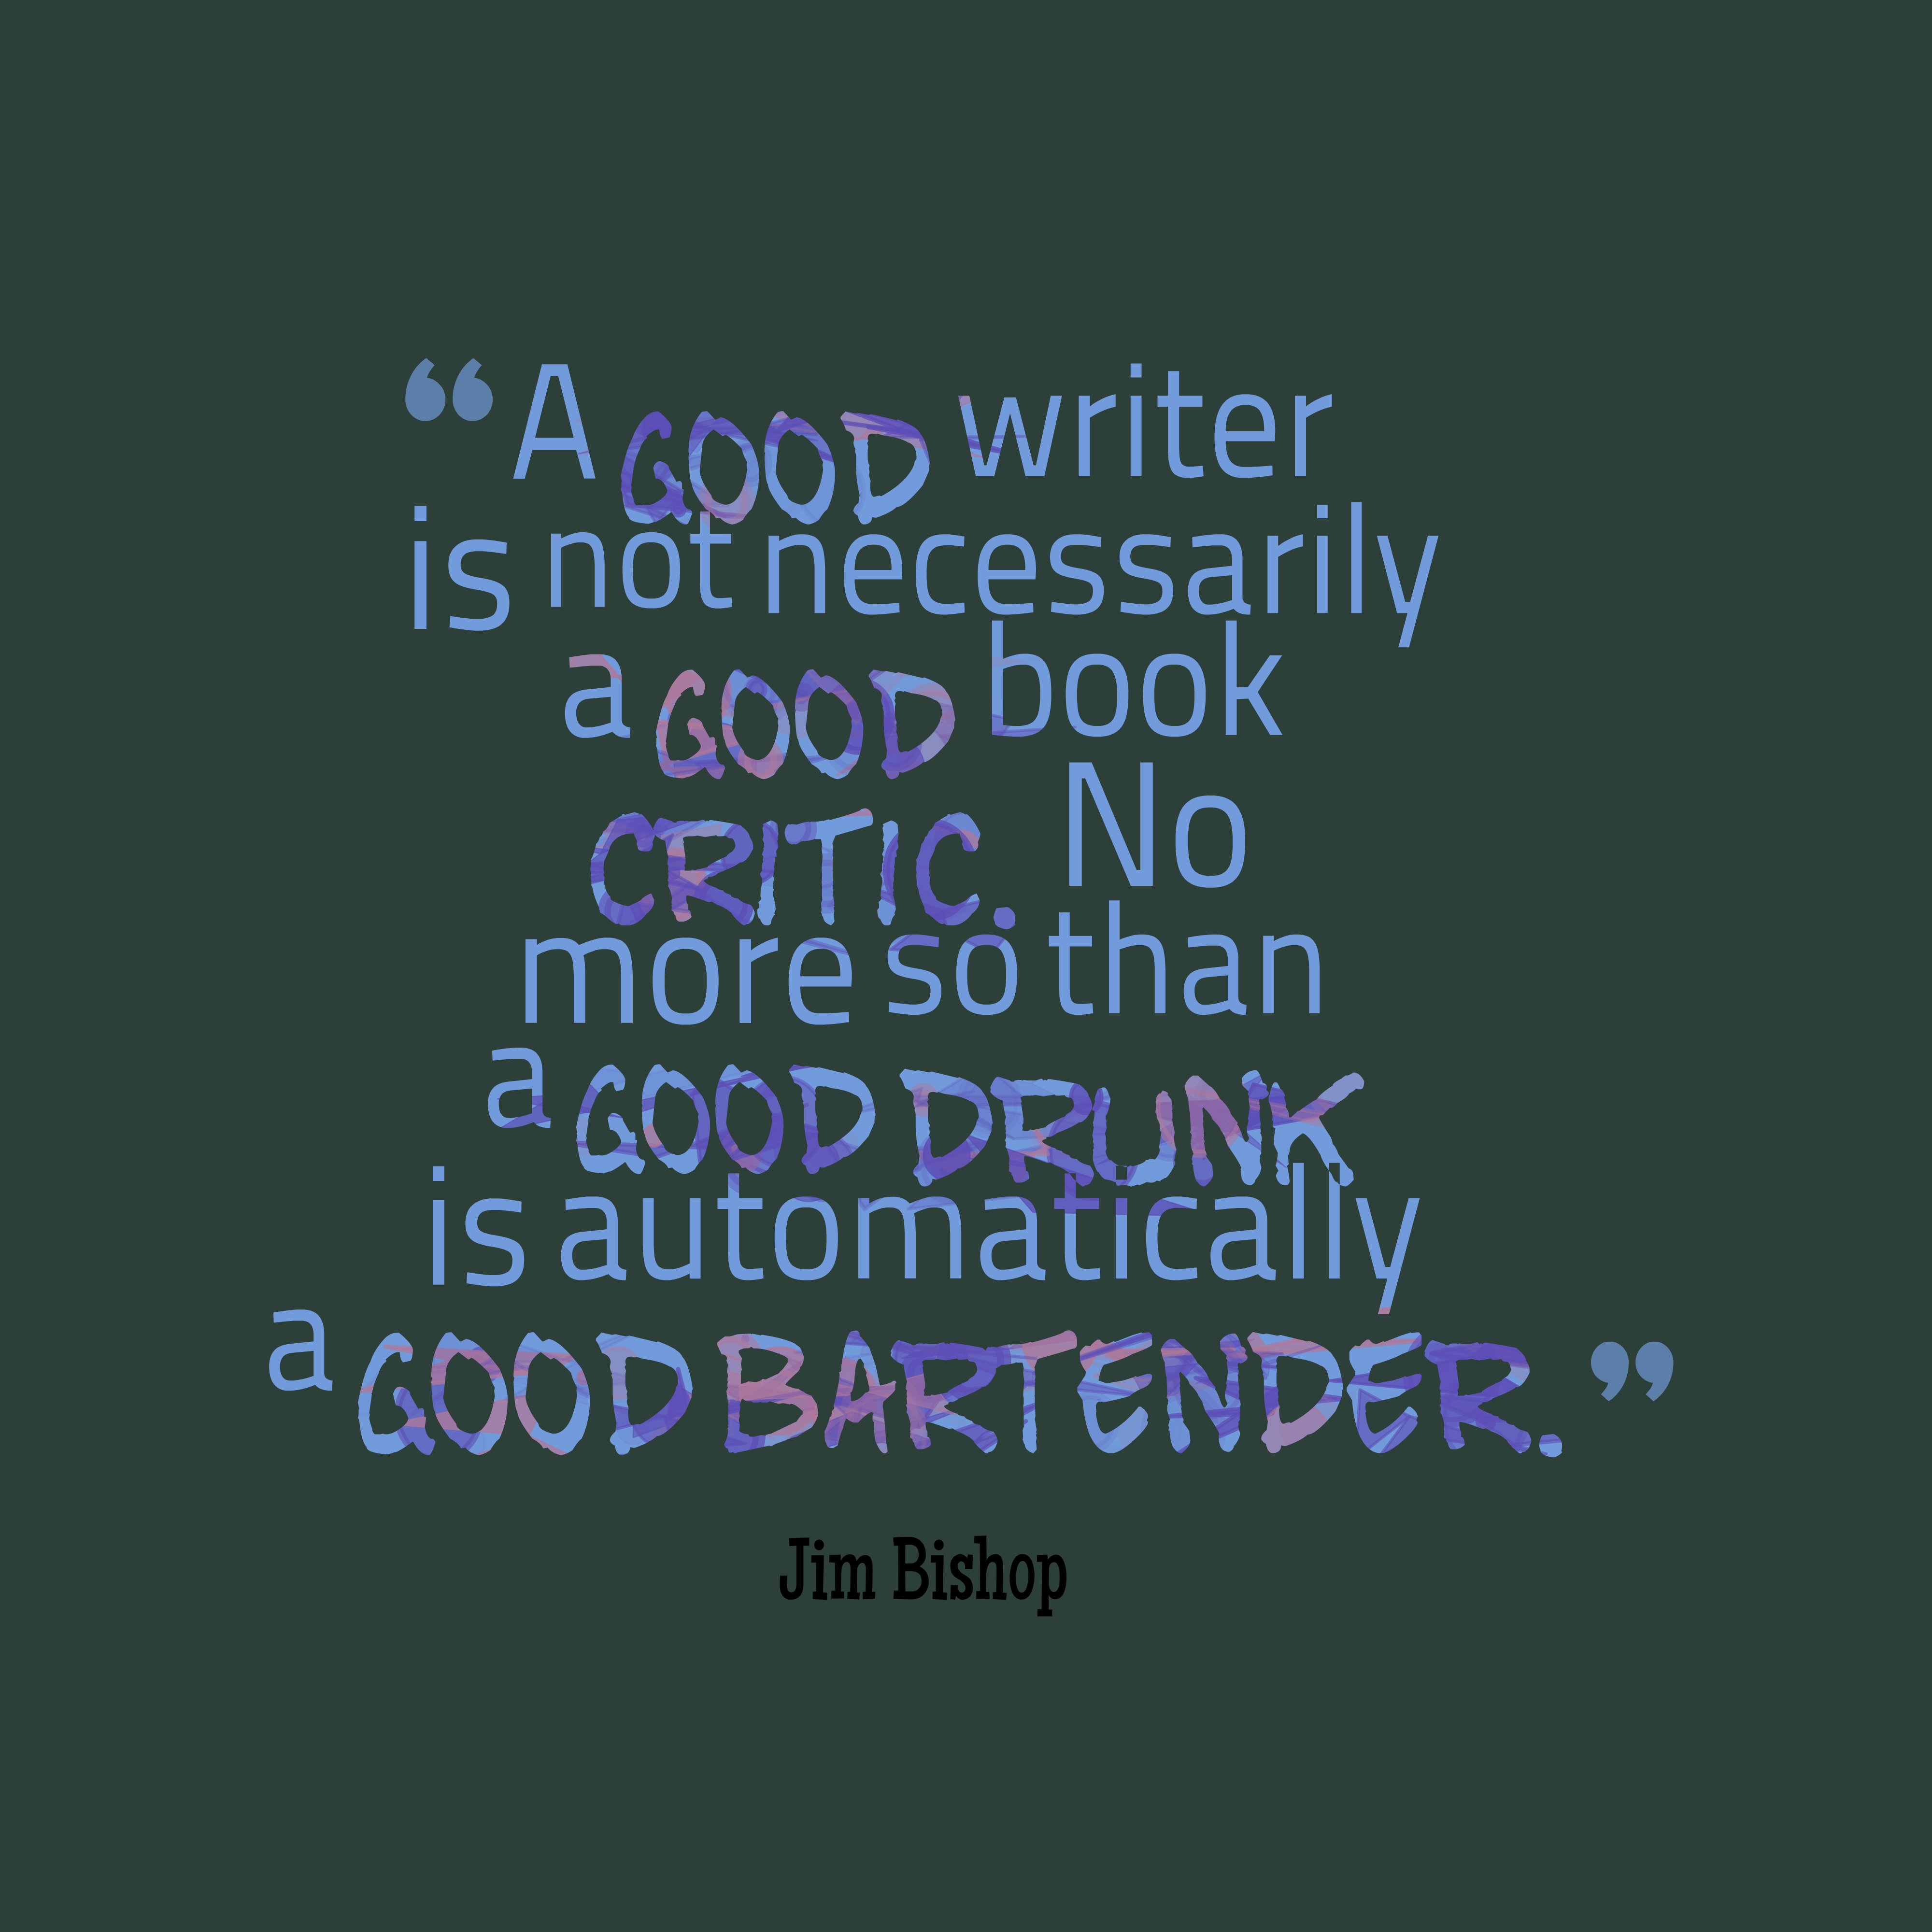 Quotes image of A good writer is not necessarily a good book critic. No more so than a good drunk is automatically a good bartender.